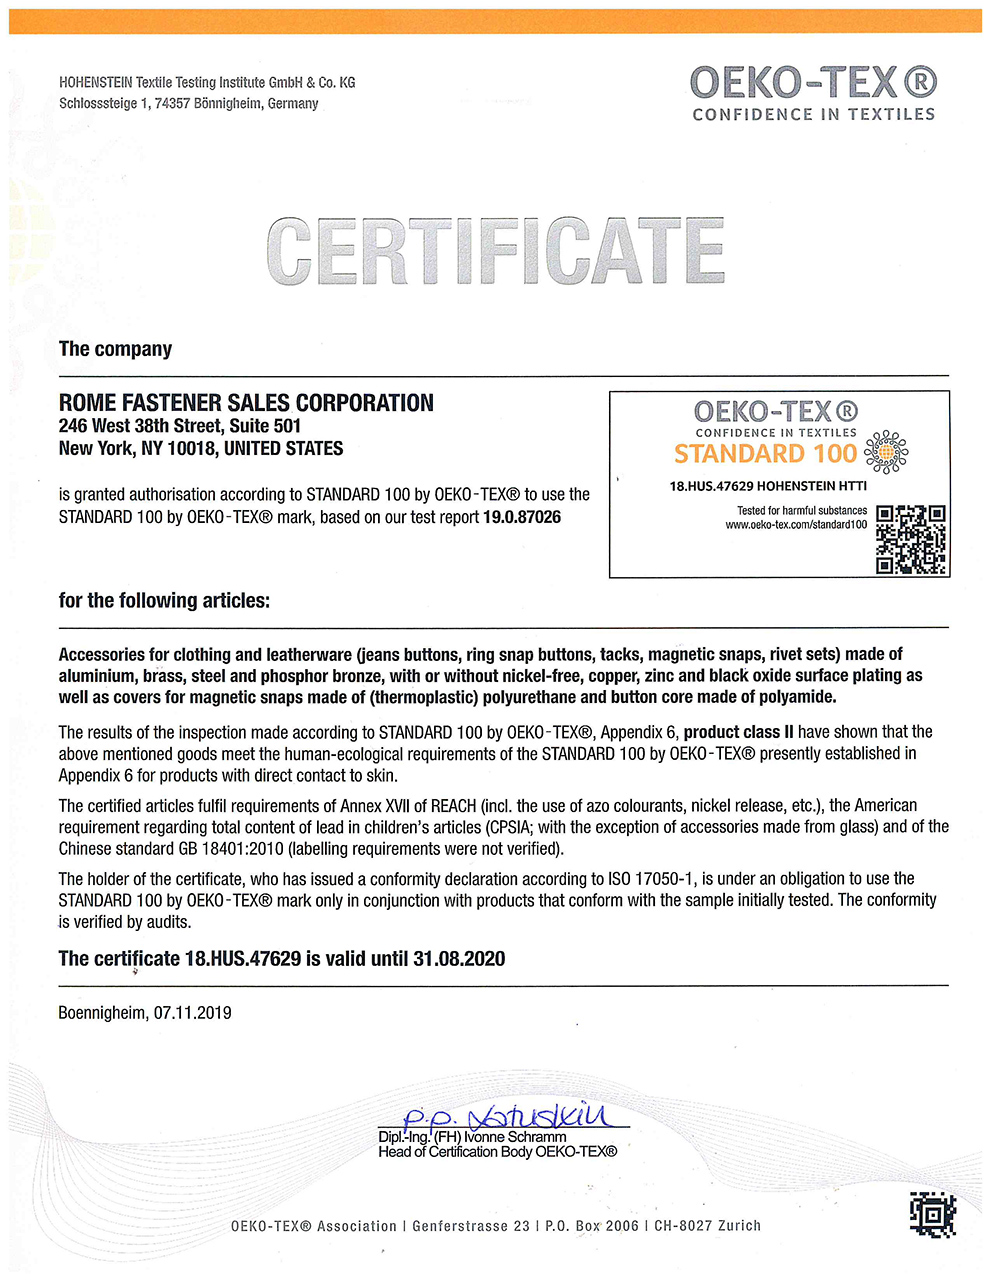 Oekotex Standard 100 Certification